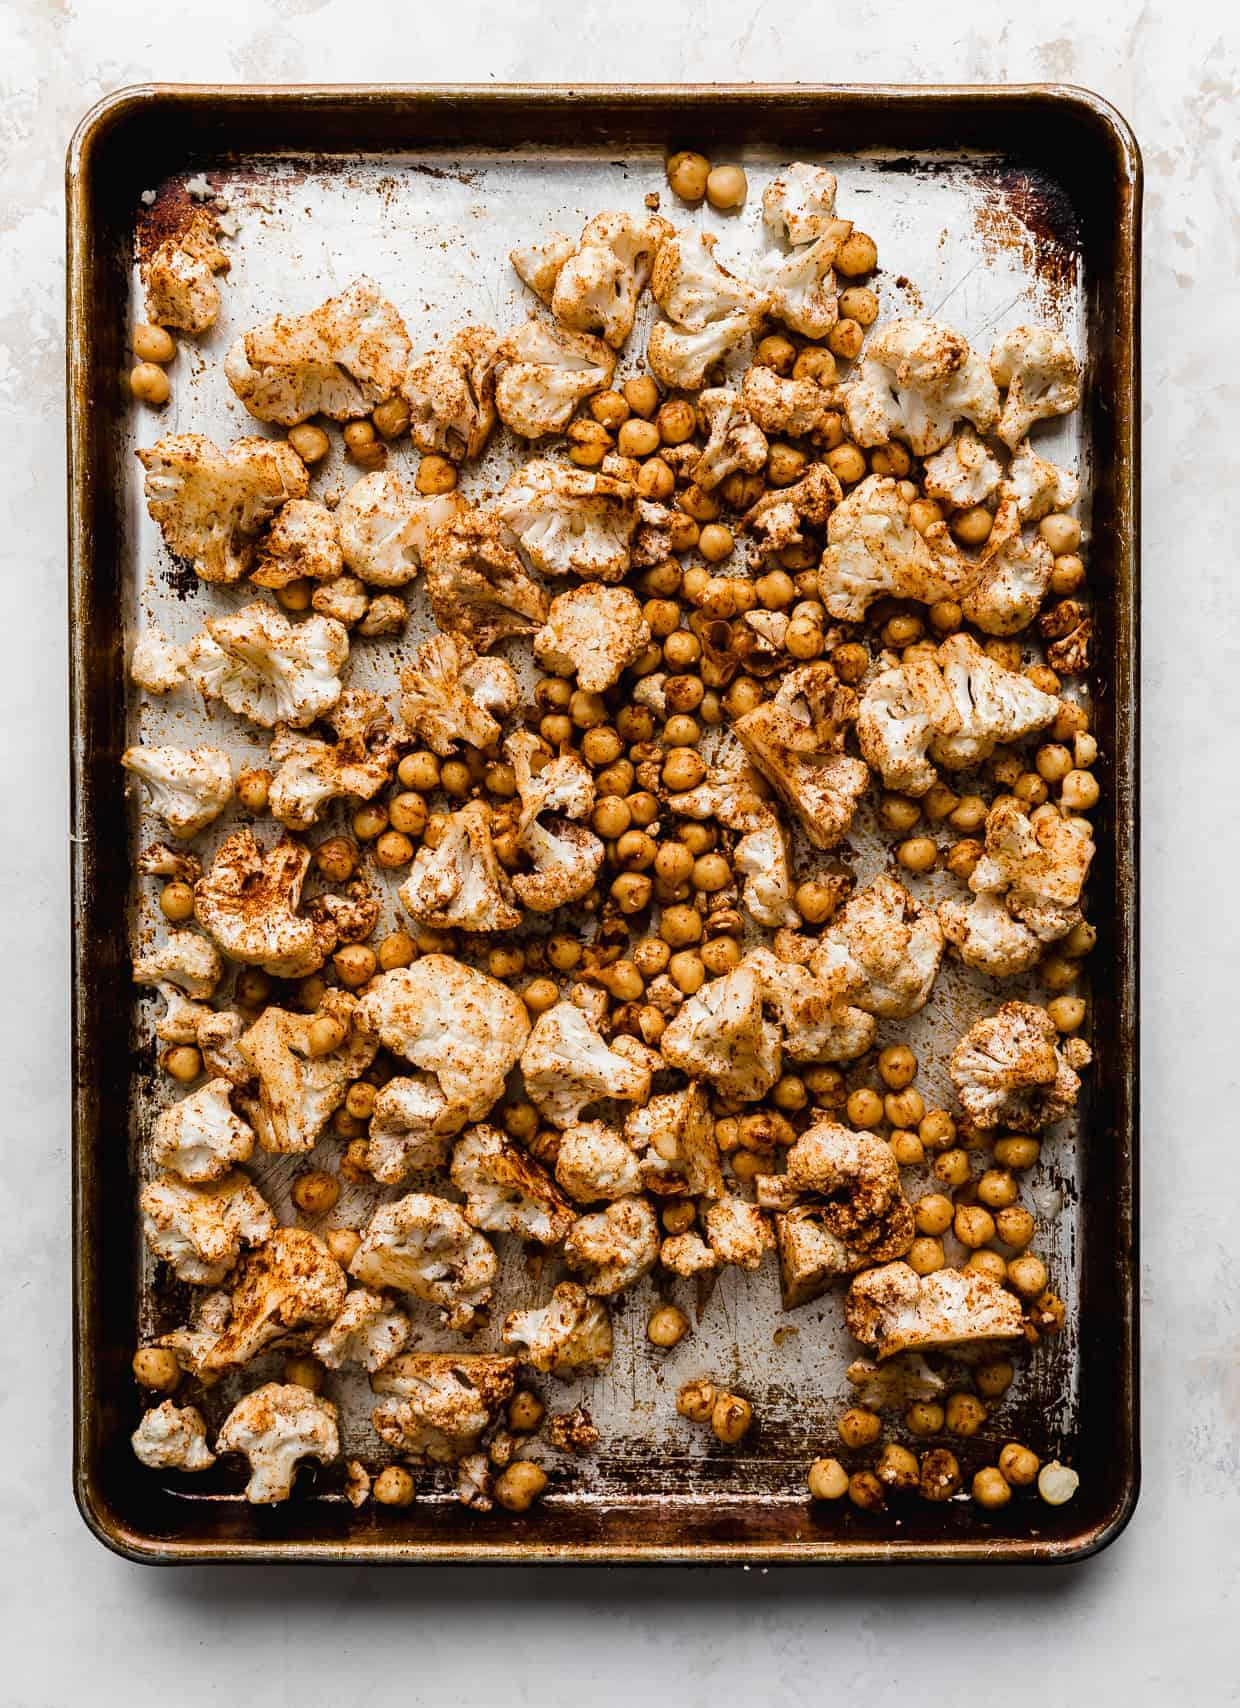 A baking sheet full of roasted cauliflower florets and chickpeas.